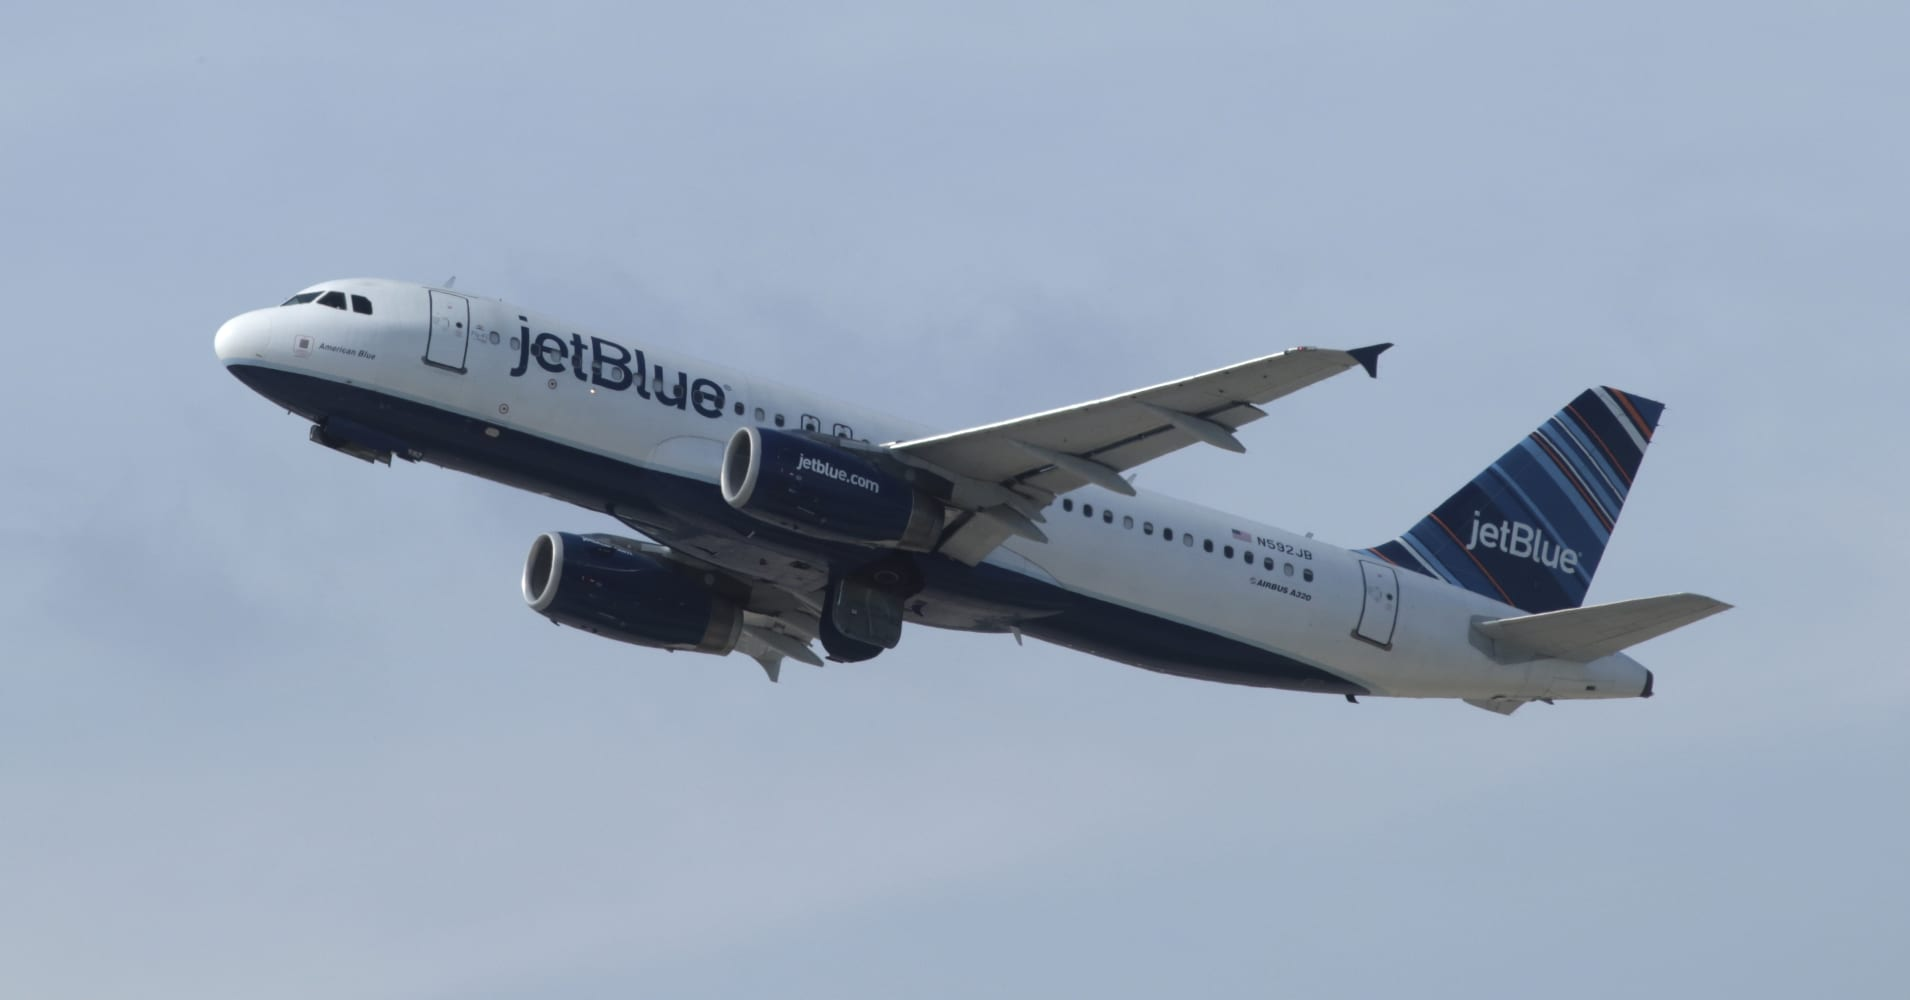 JetBlue crew members claim in lawsuit they were drugged, and one raped by pilots